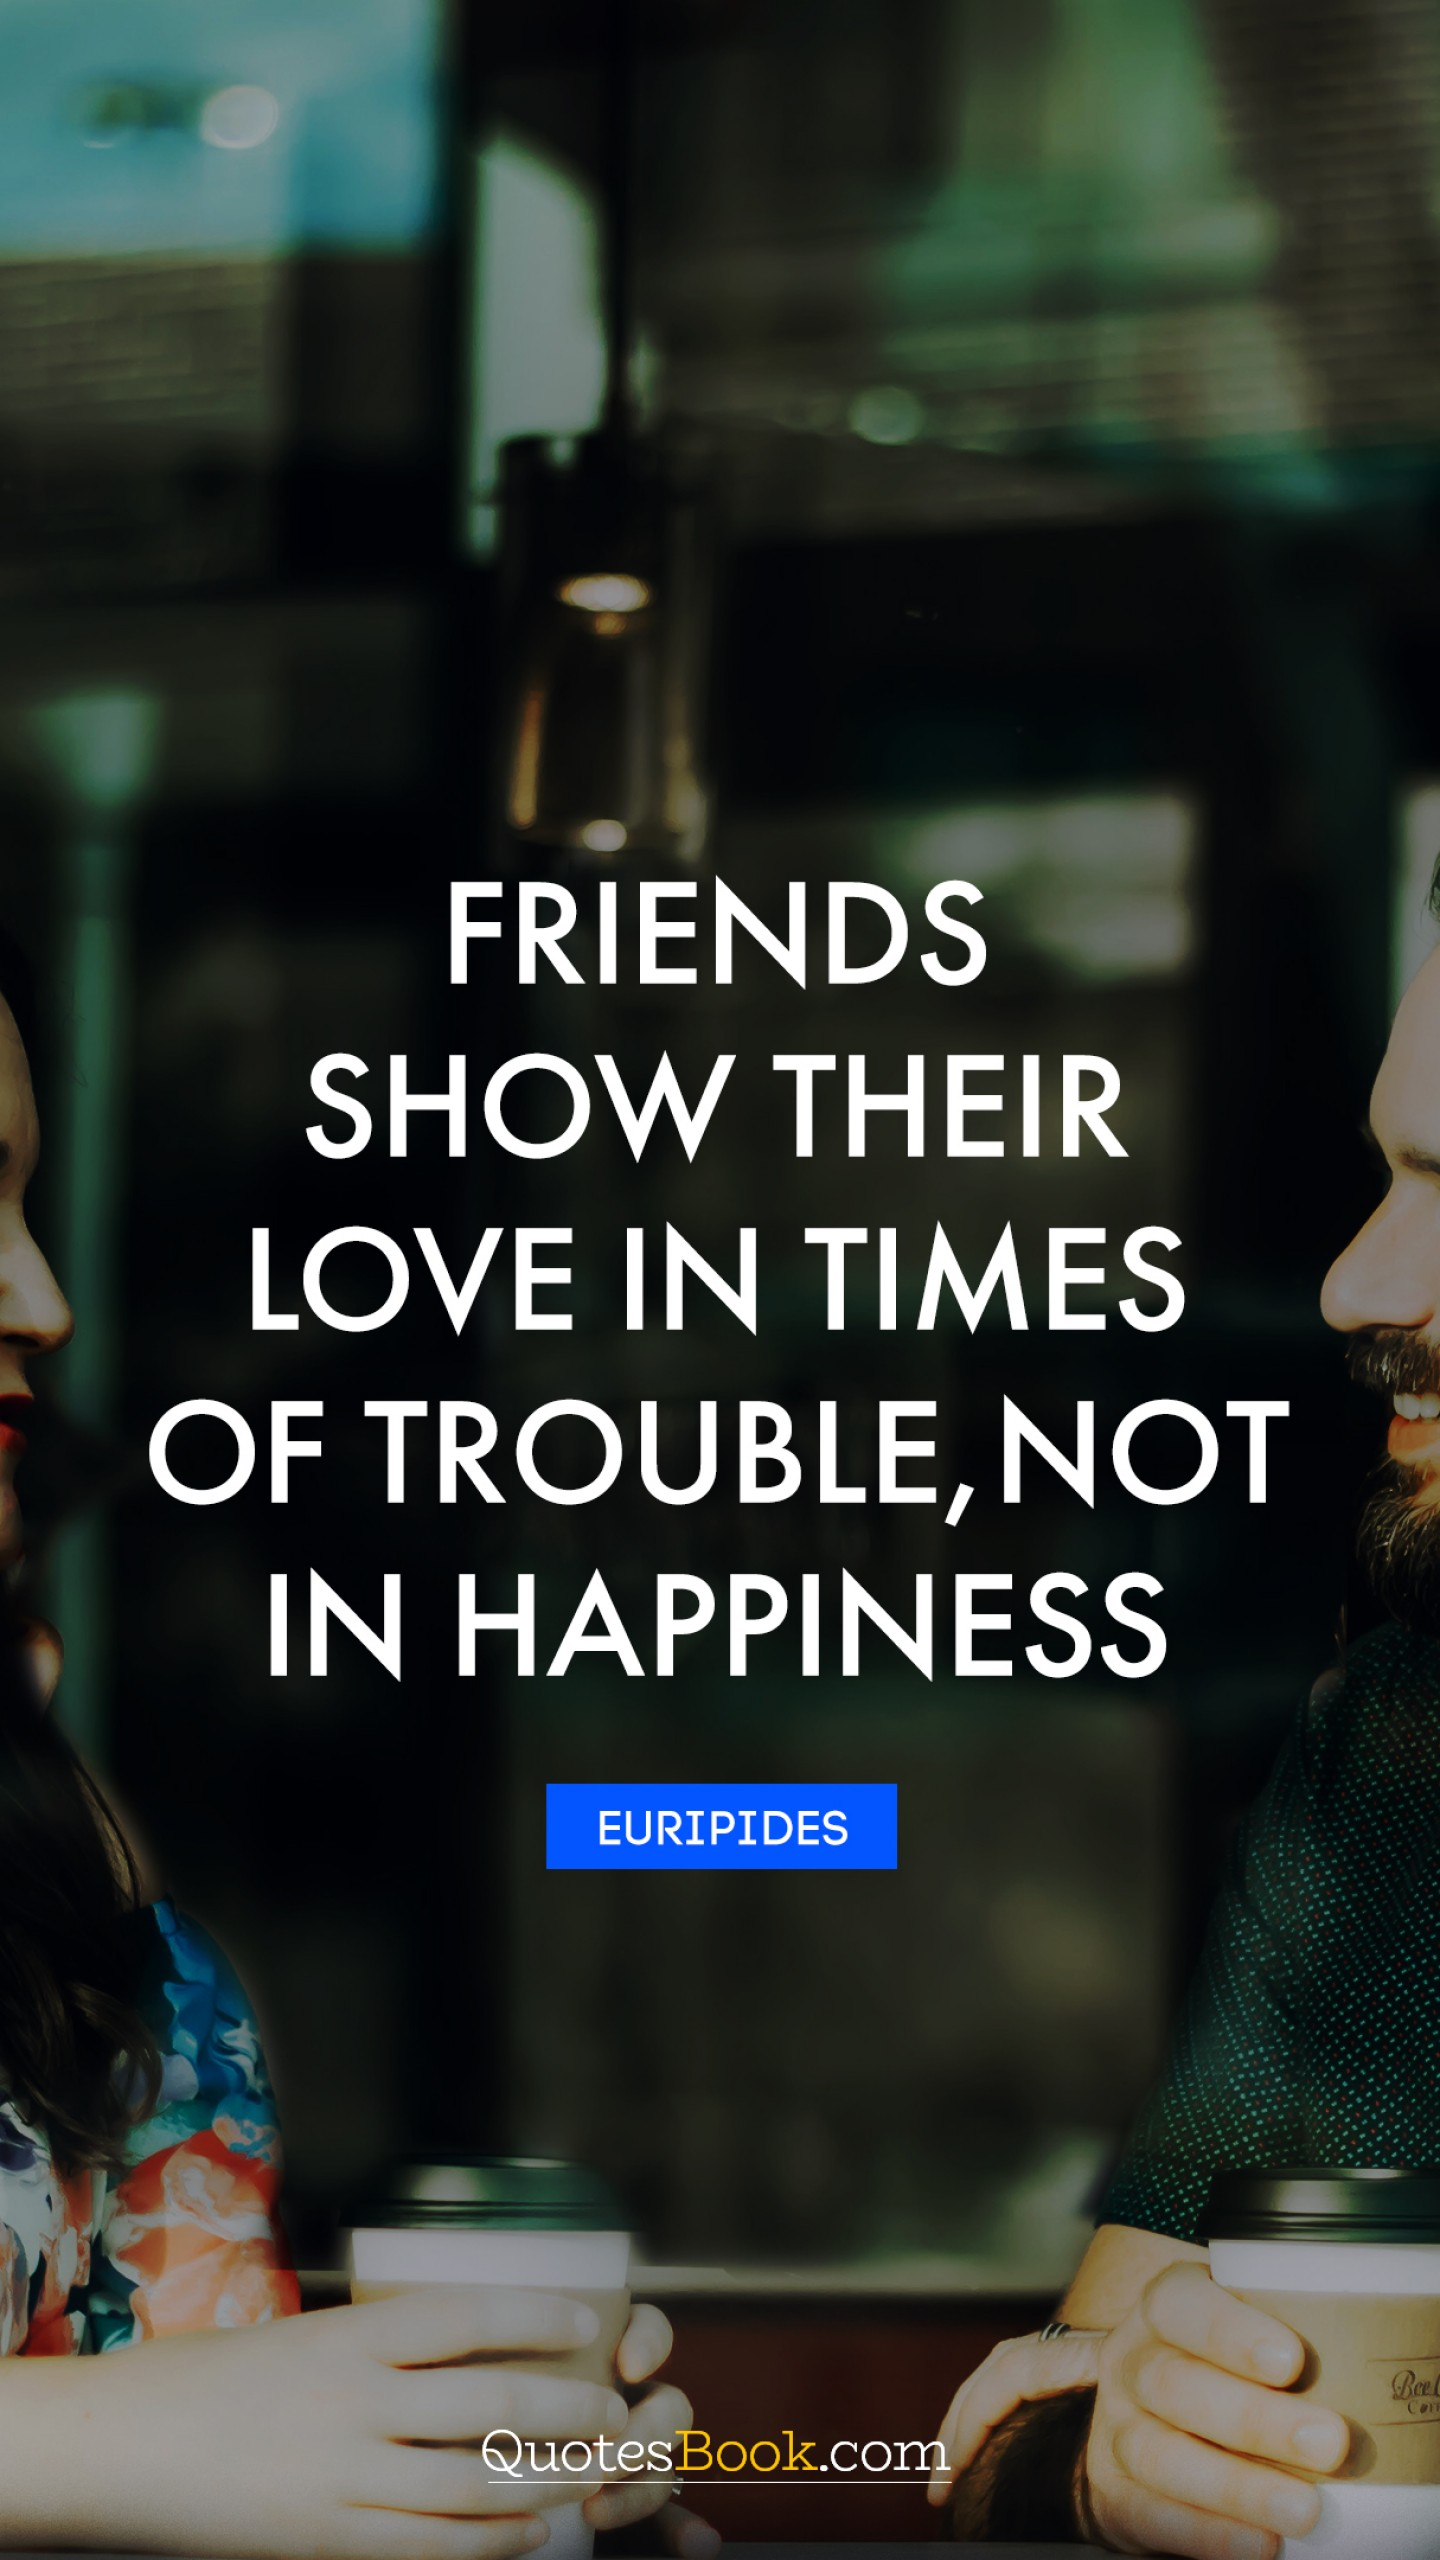 Friends Show Their Love In Times Of Trouble Not In Happiness Quote By Euripides Quotesbook